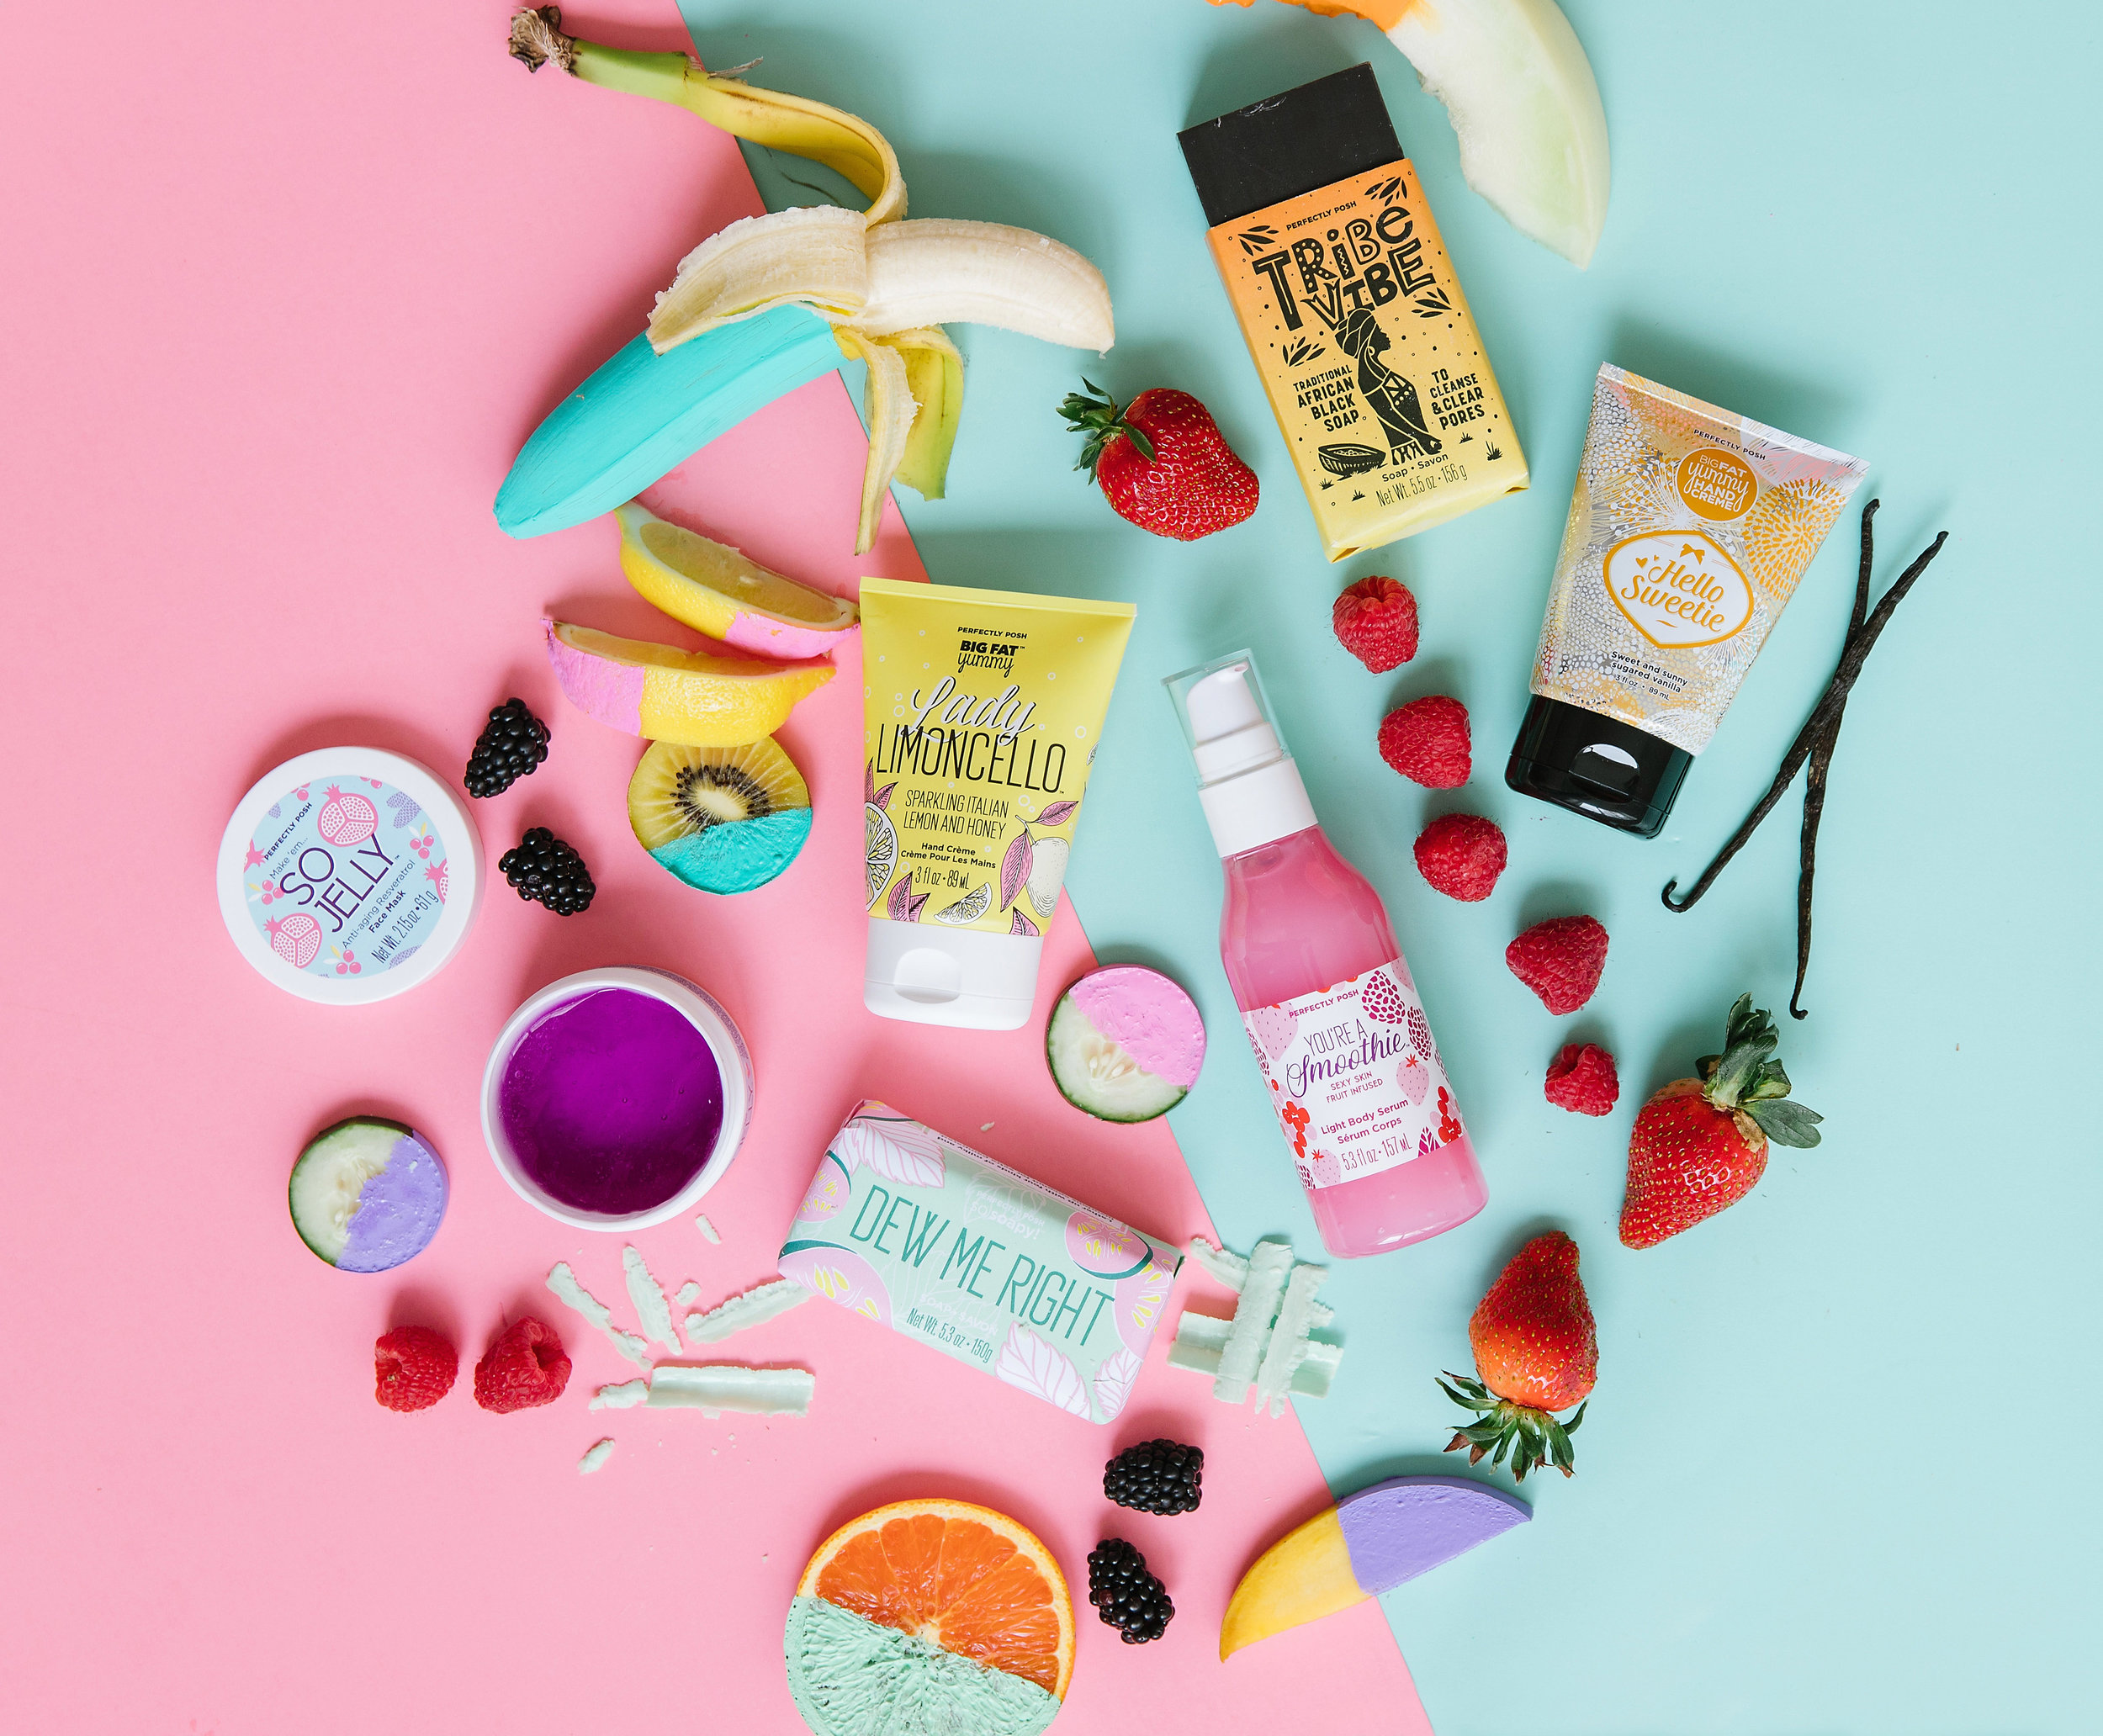 Perfectly Posh Spring 2019 product lineup, Dew Me Right So Soapy Bath Bar, You're a Smoothie Body Serum, Hello Sweetie Big Fat Yummy Hand Cream, Lady Limoncello Big Fat Yummy Hand Cream, So Jelly Anti-Aging Face Mask, Tribe Vibe Traditional African Black Soap with sustainably sourced shea butter from the Shea Sisterhood